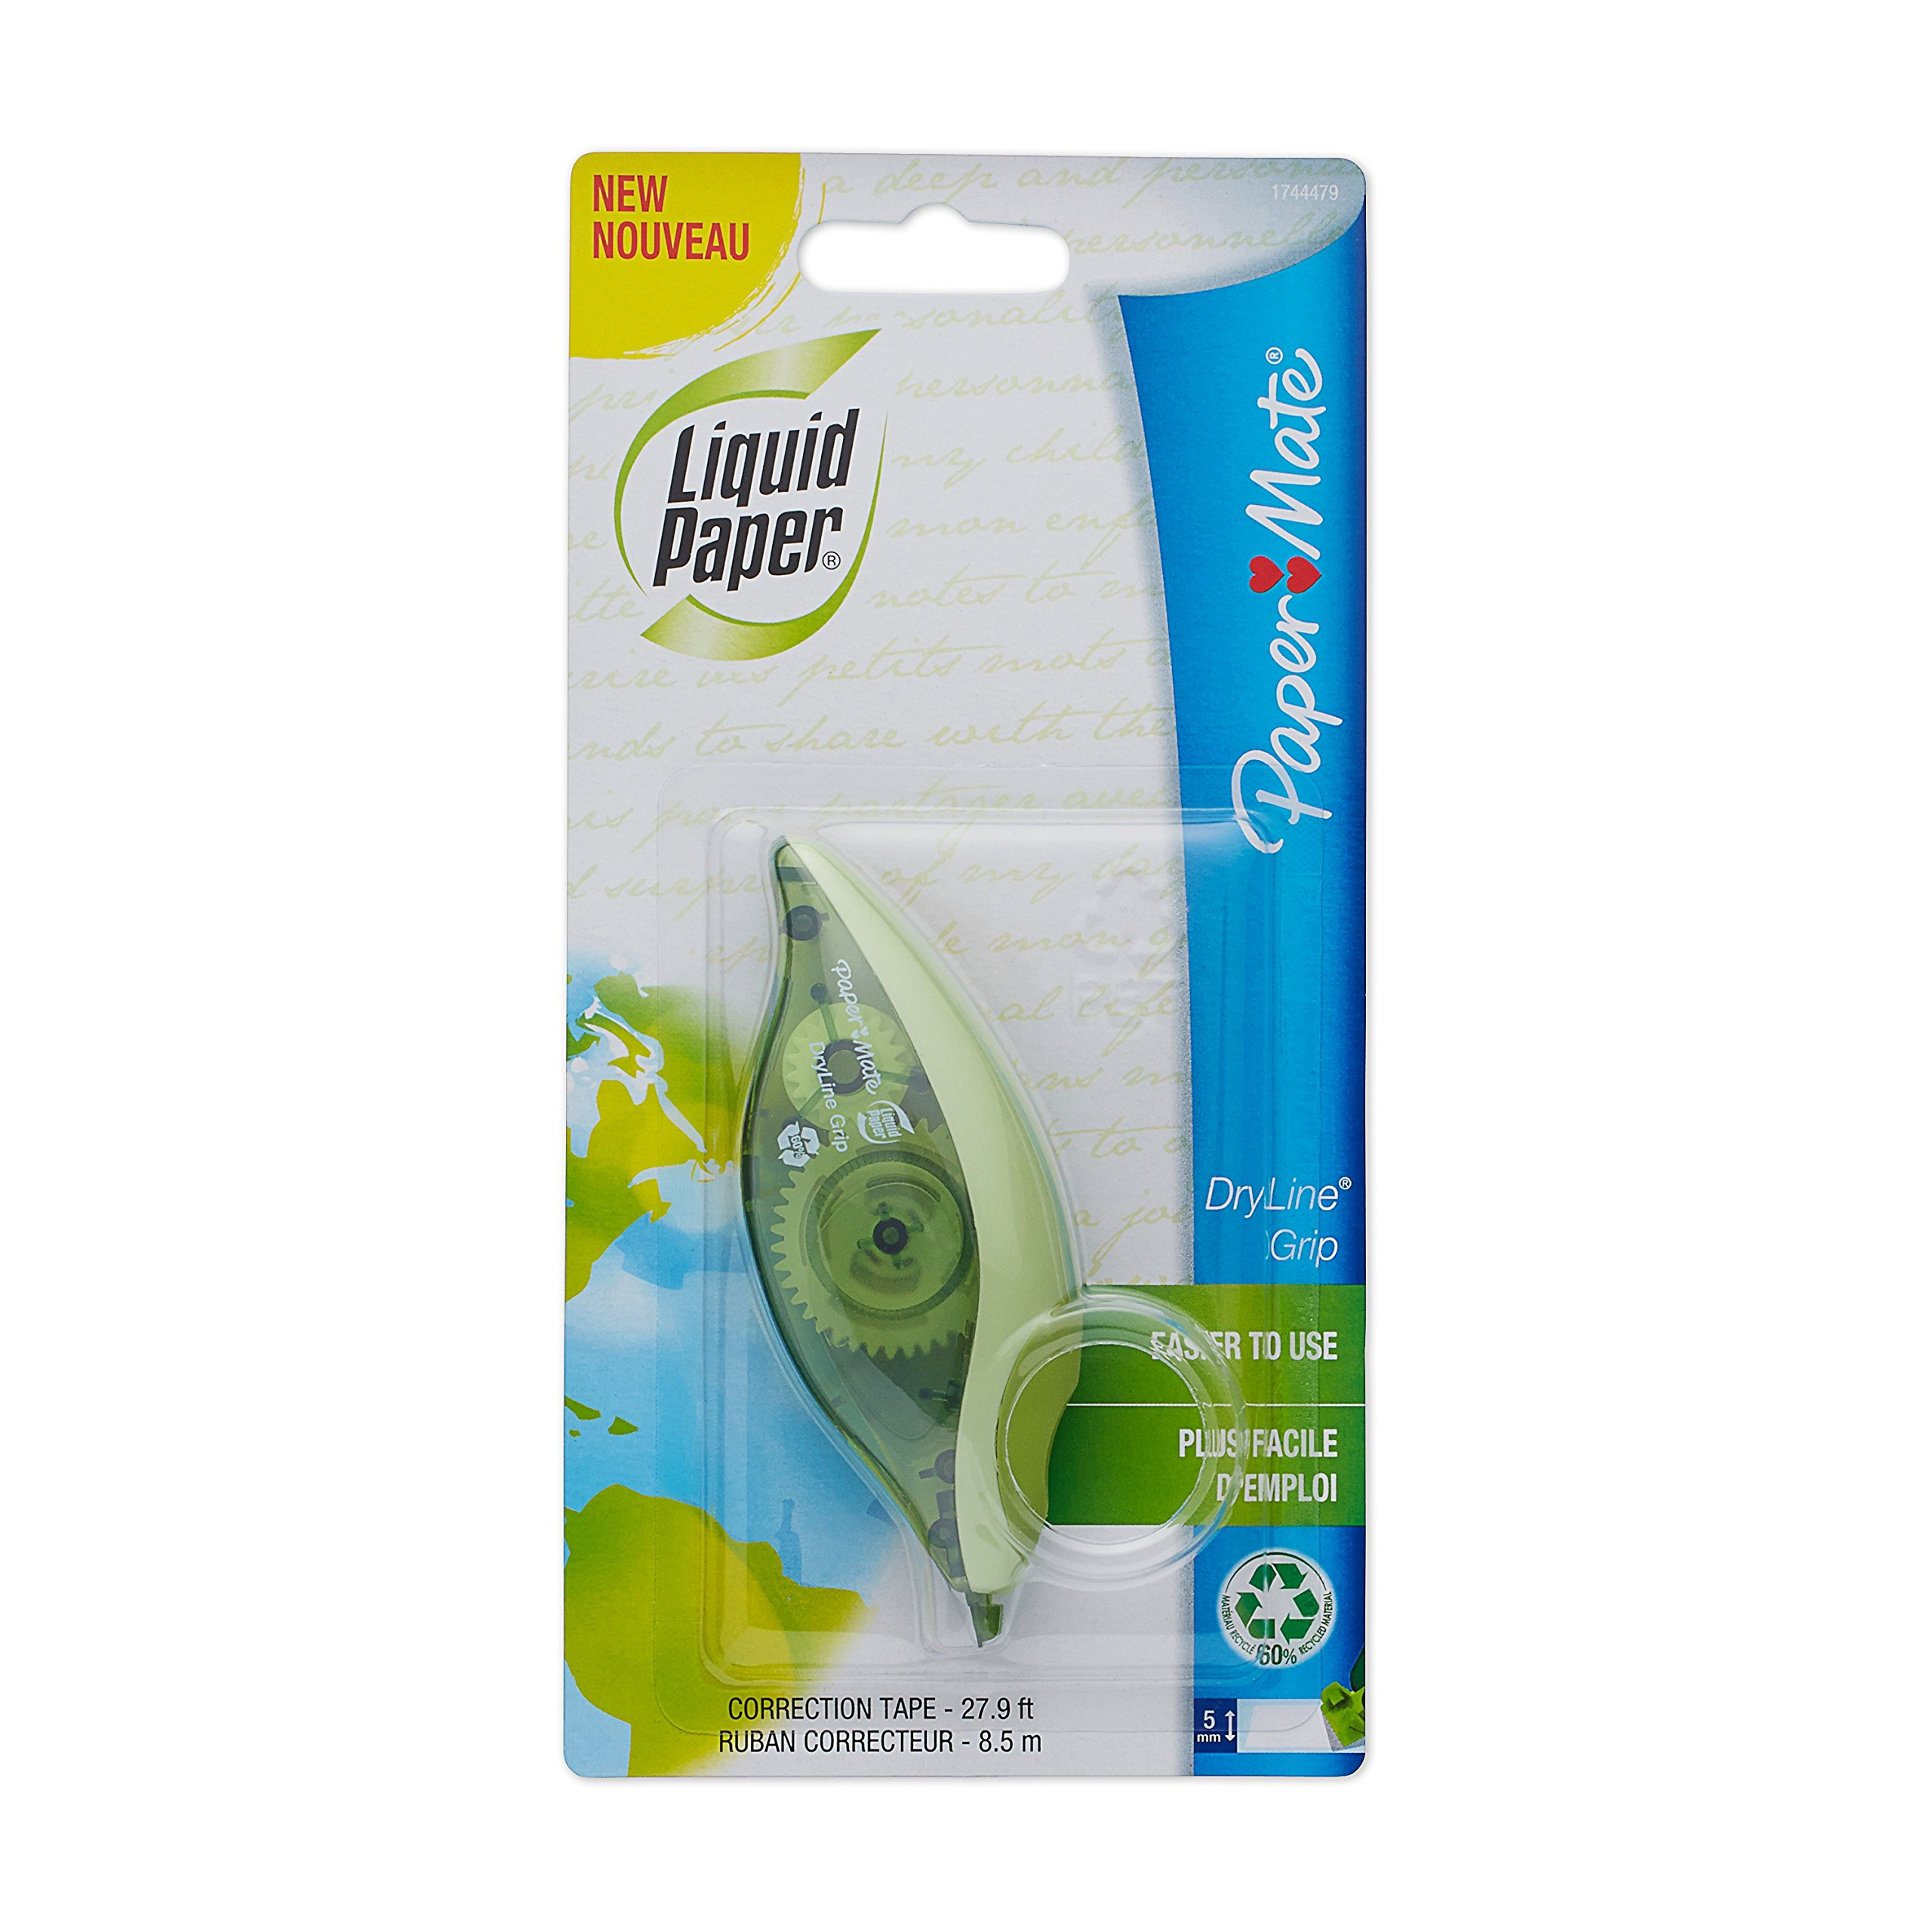 Paper Mate Liquid Paper DryLine Grip Correction Tape, Recycled, 1 Count